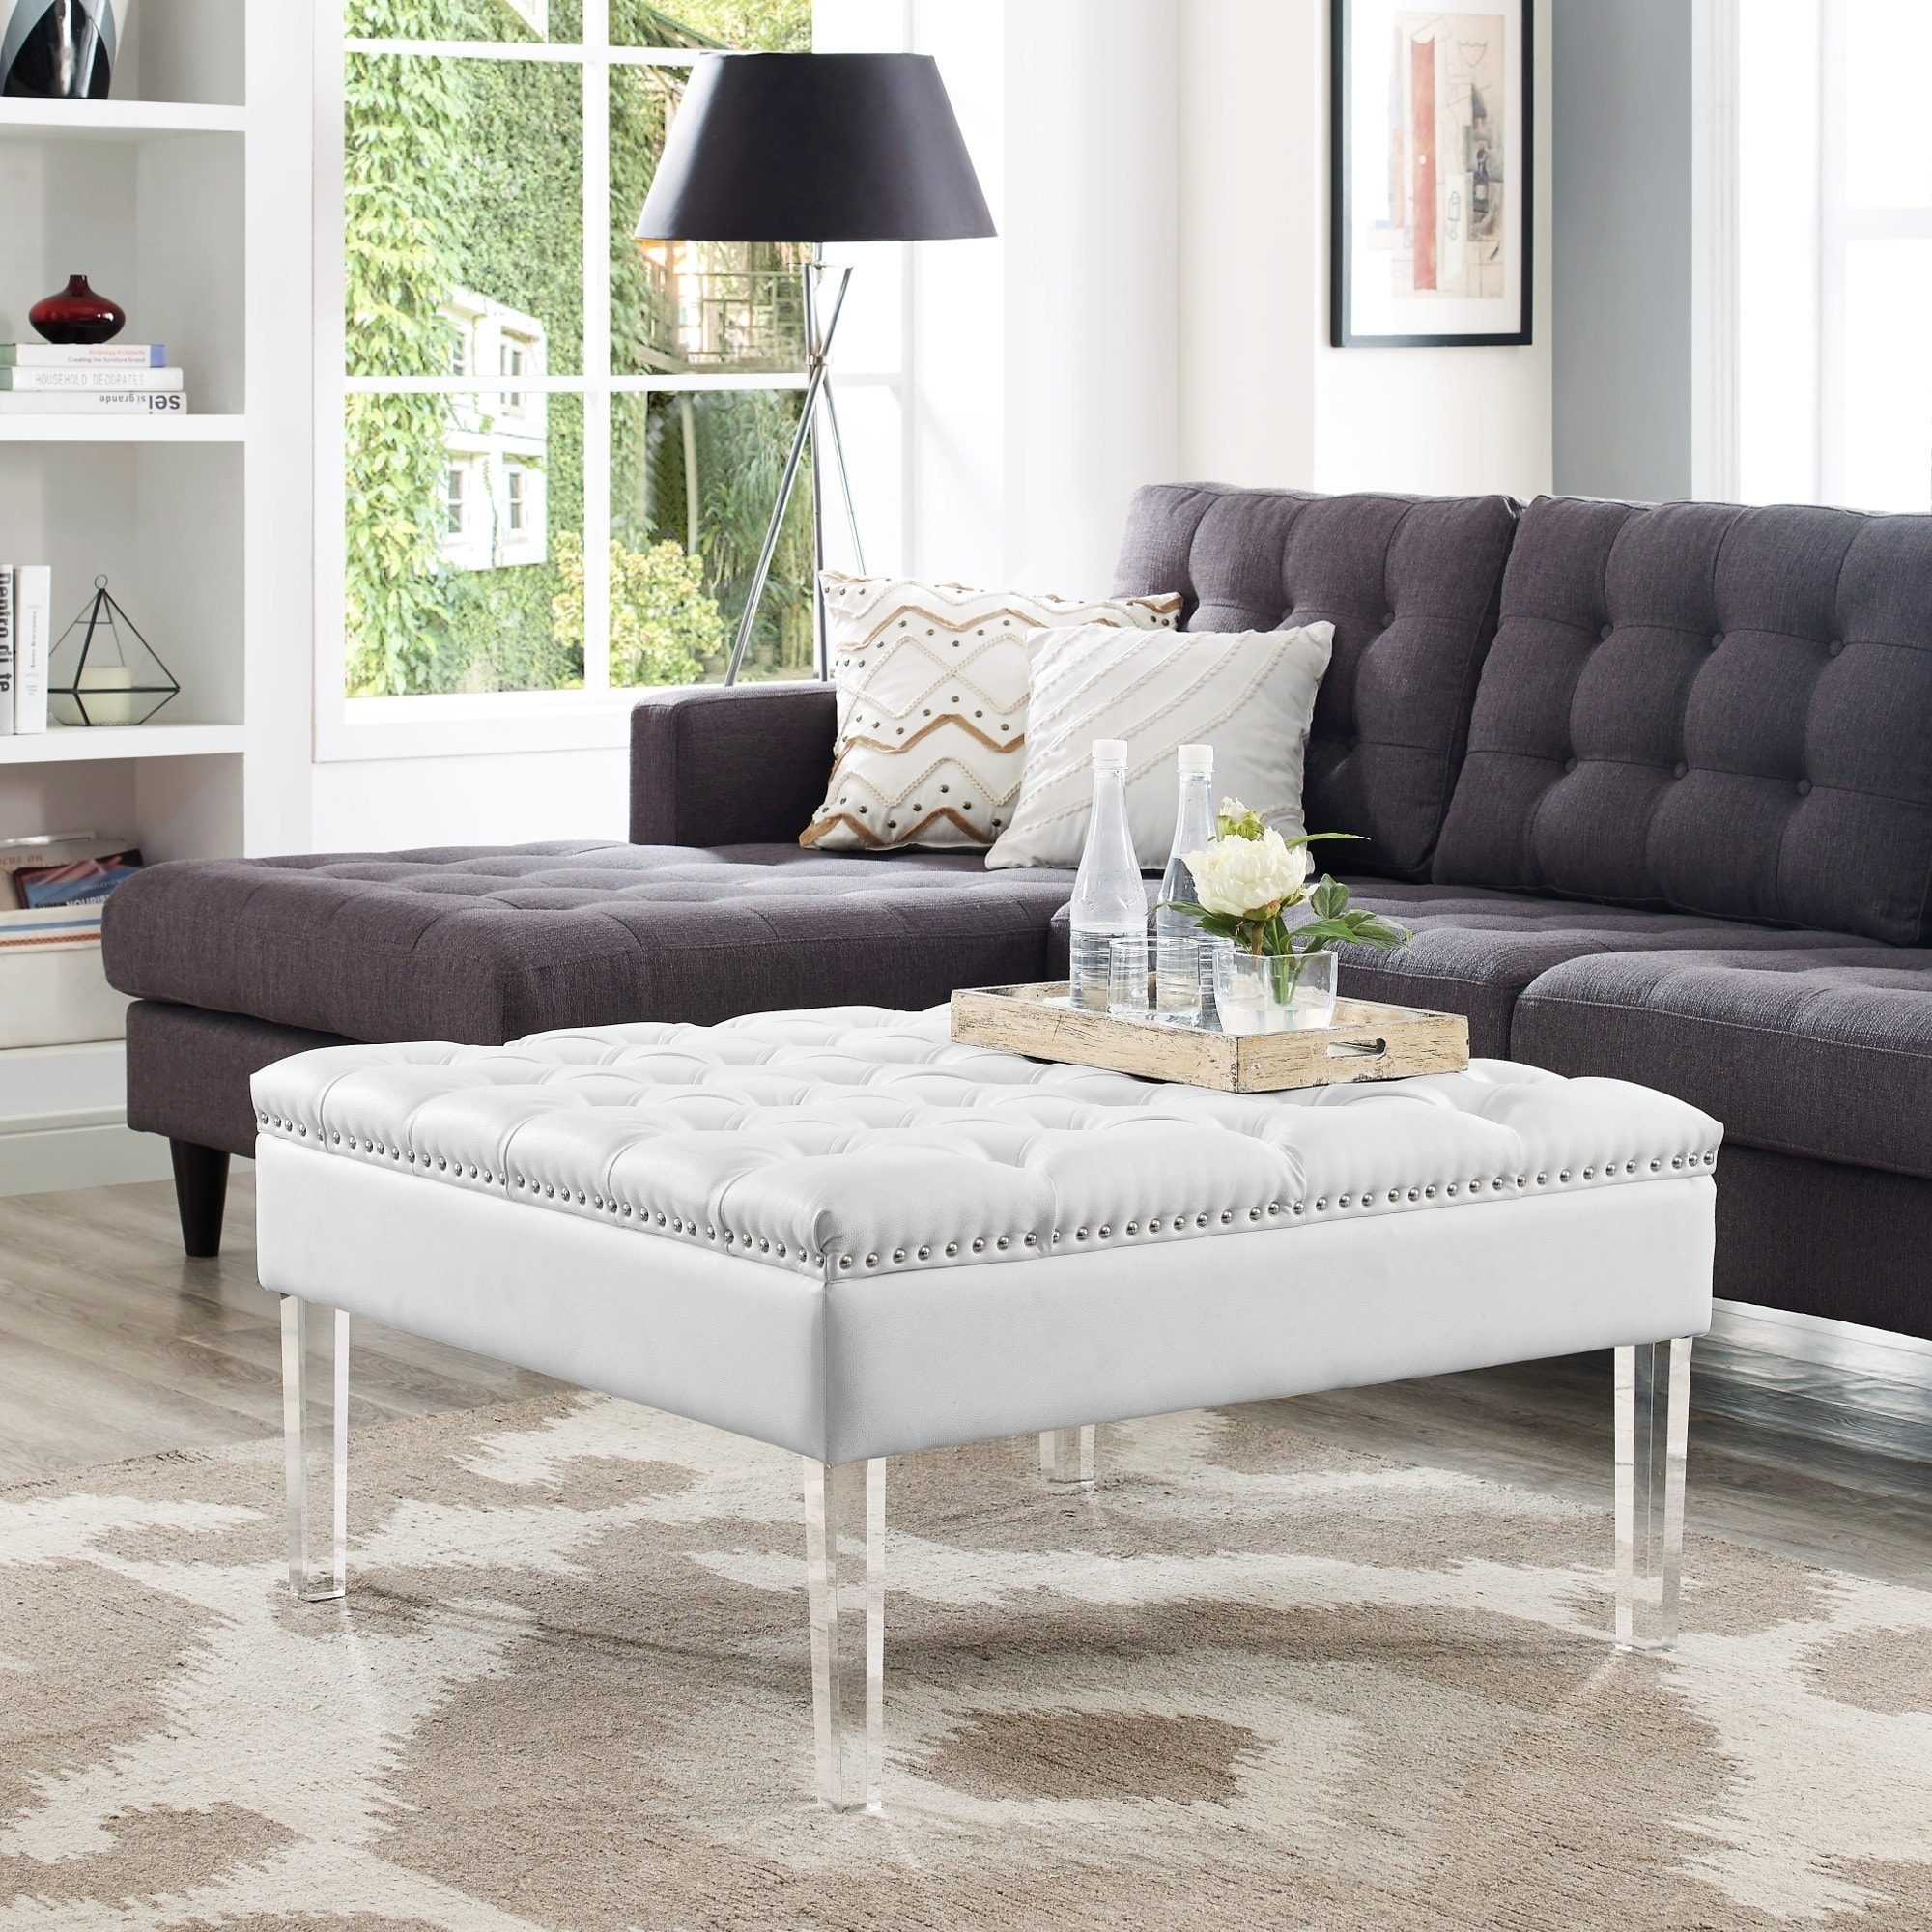 Vivian Leather Oversized Button Tufted Ottoman Coffee Table   Free Shipping  Today   Overstock   22870182